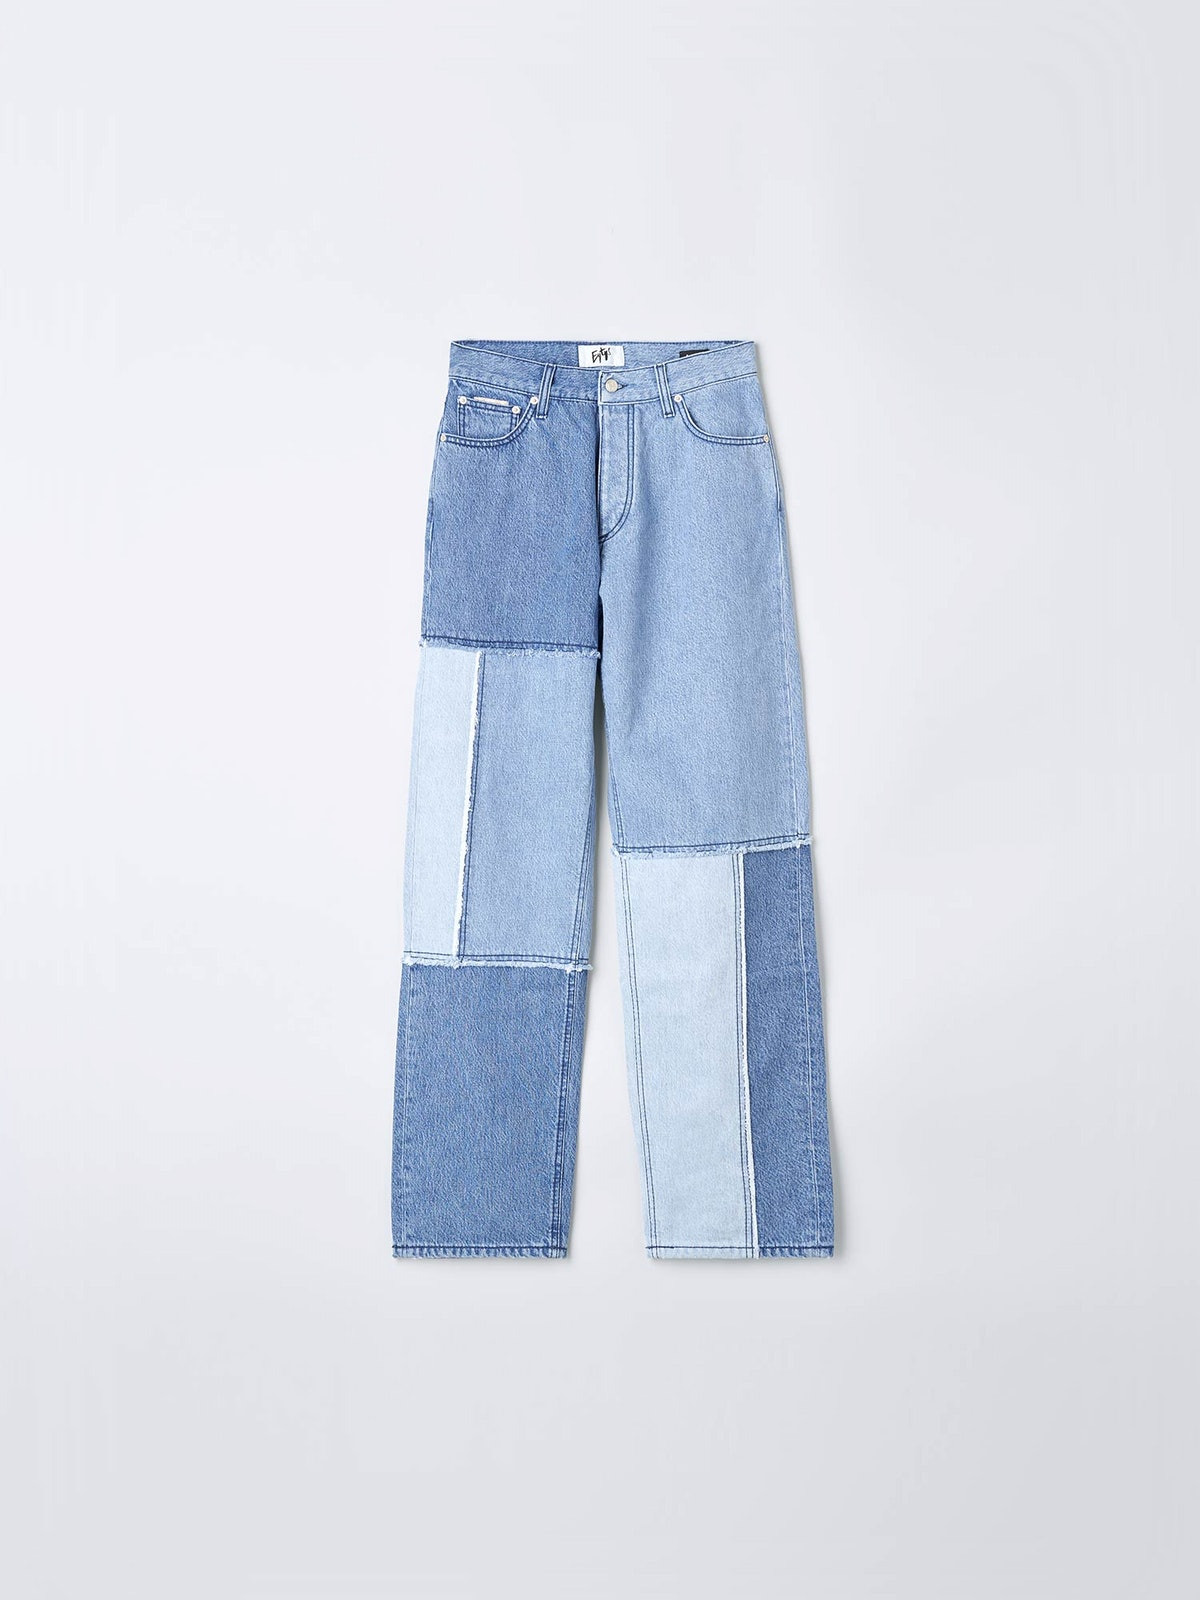 Benz Patchwork Jeans from Eytys.